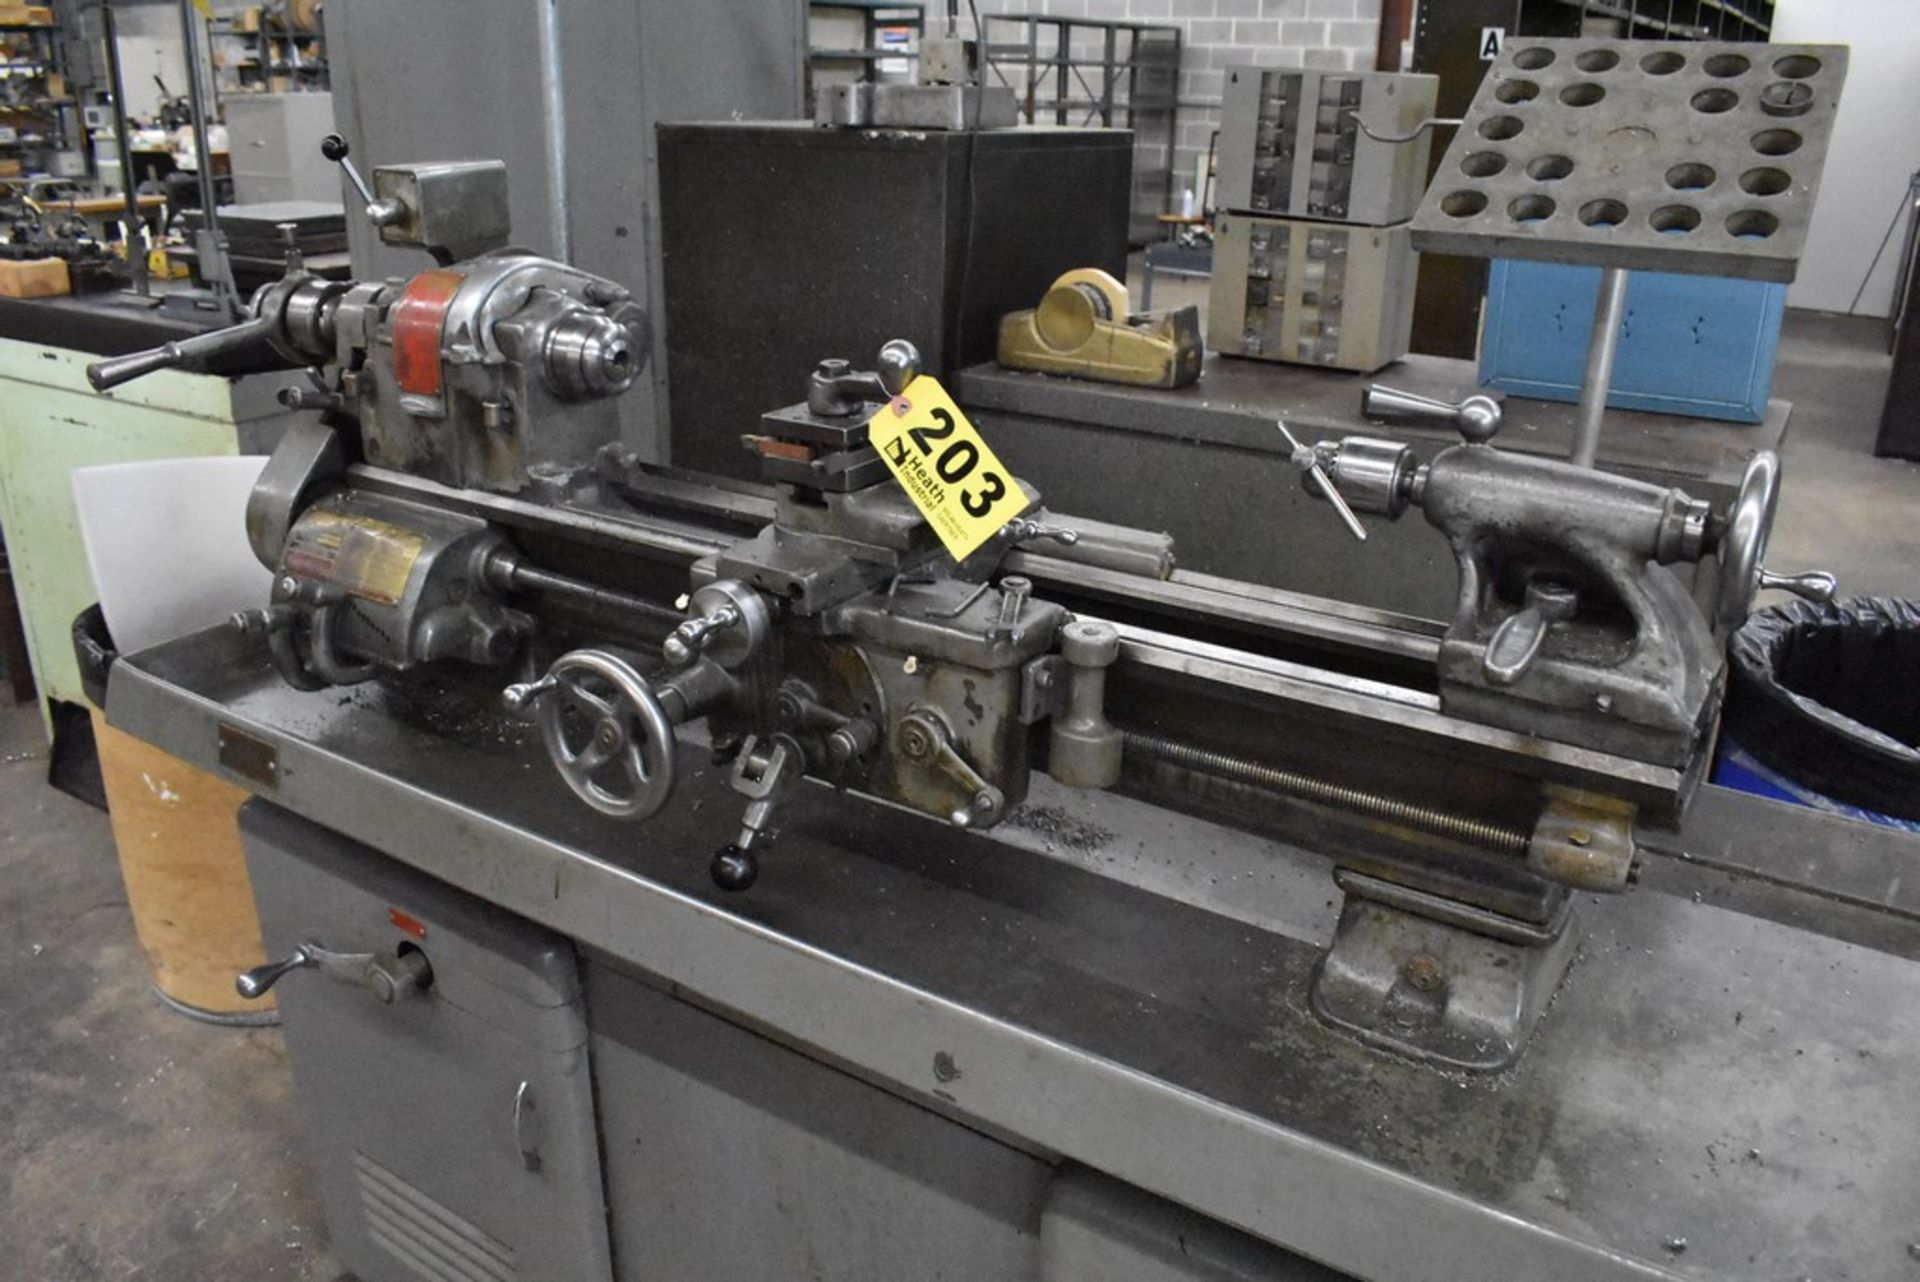 """SOUTH BEND 10""""X30"""" CABINET BASE TOOL ROOM LATHE, S/N 16711RKX12, WITH COLLET CLOSER, 4-WAY TOOL - Image 5 of 13"""